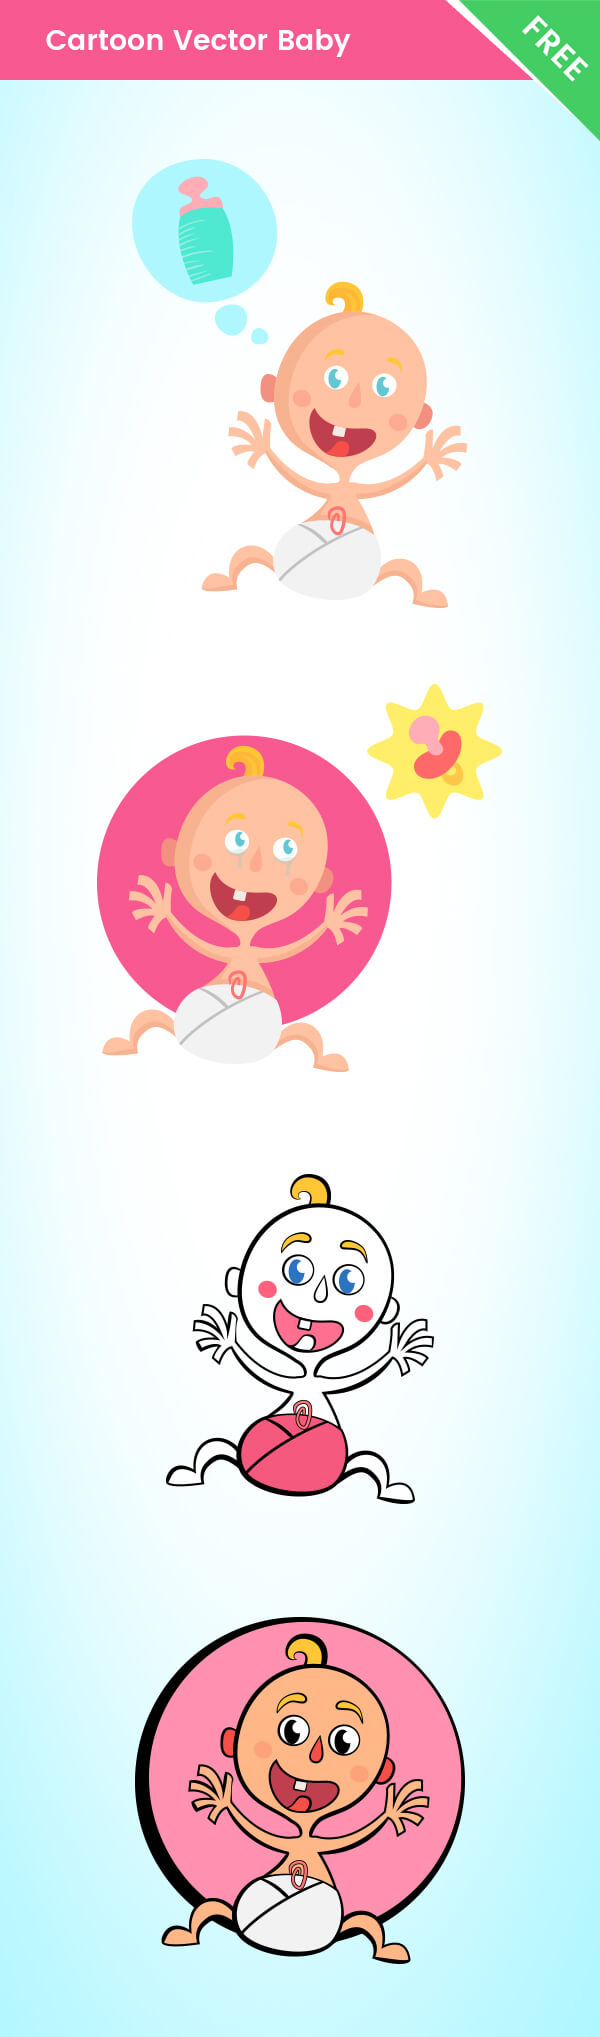 Vector Baby Cartoon Characters